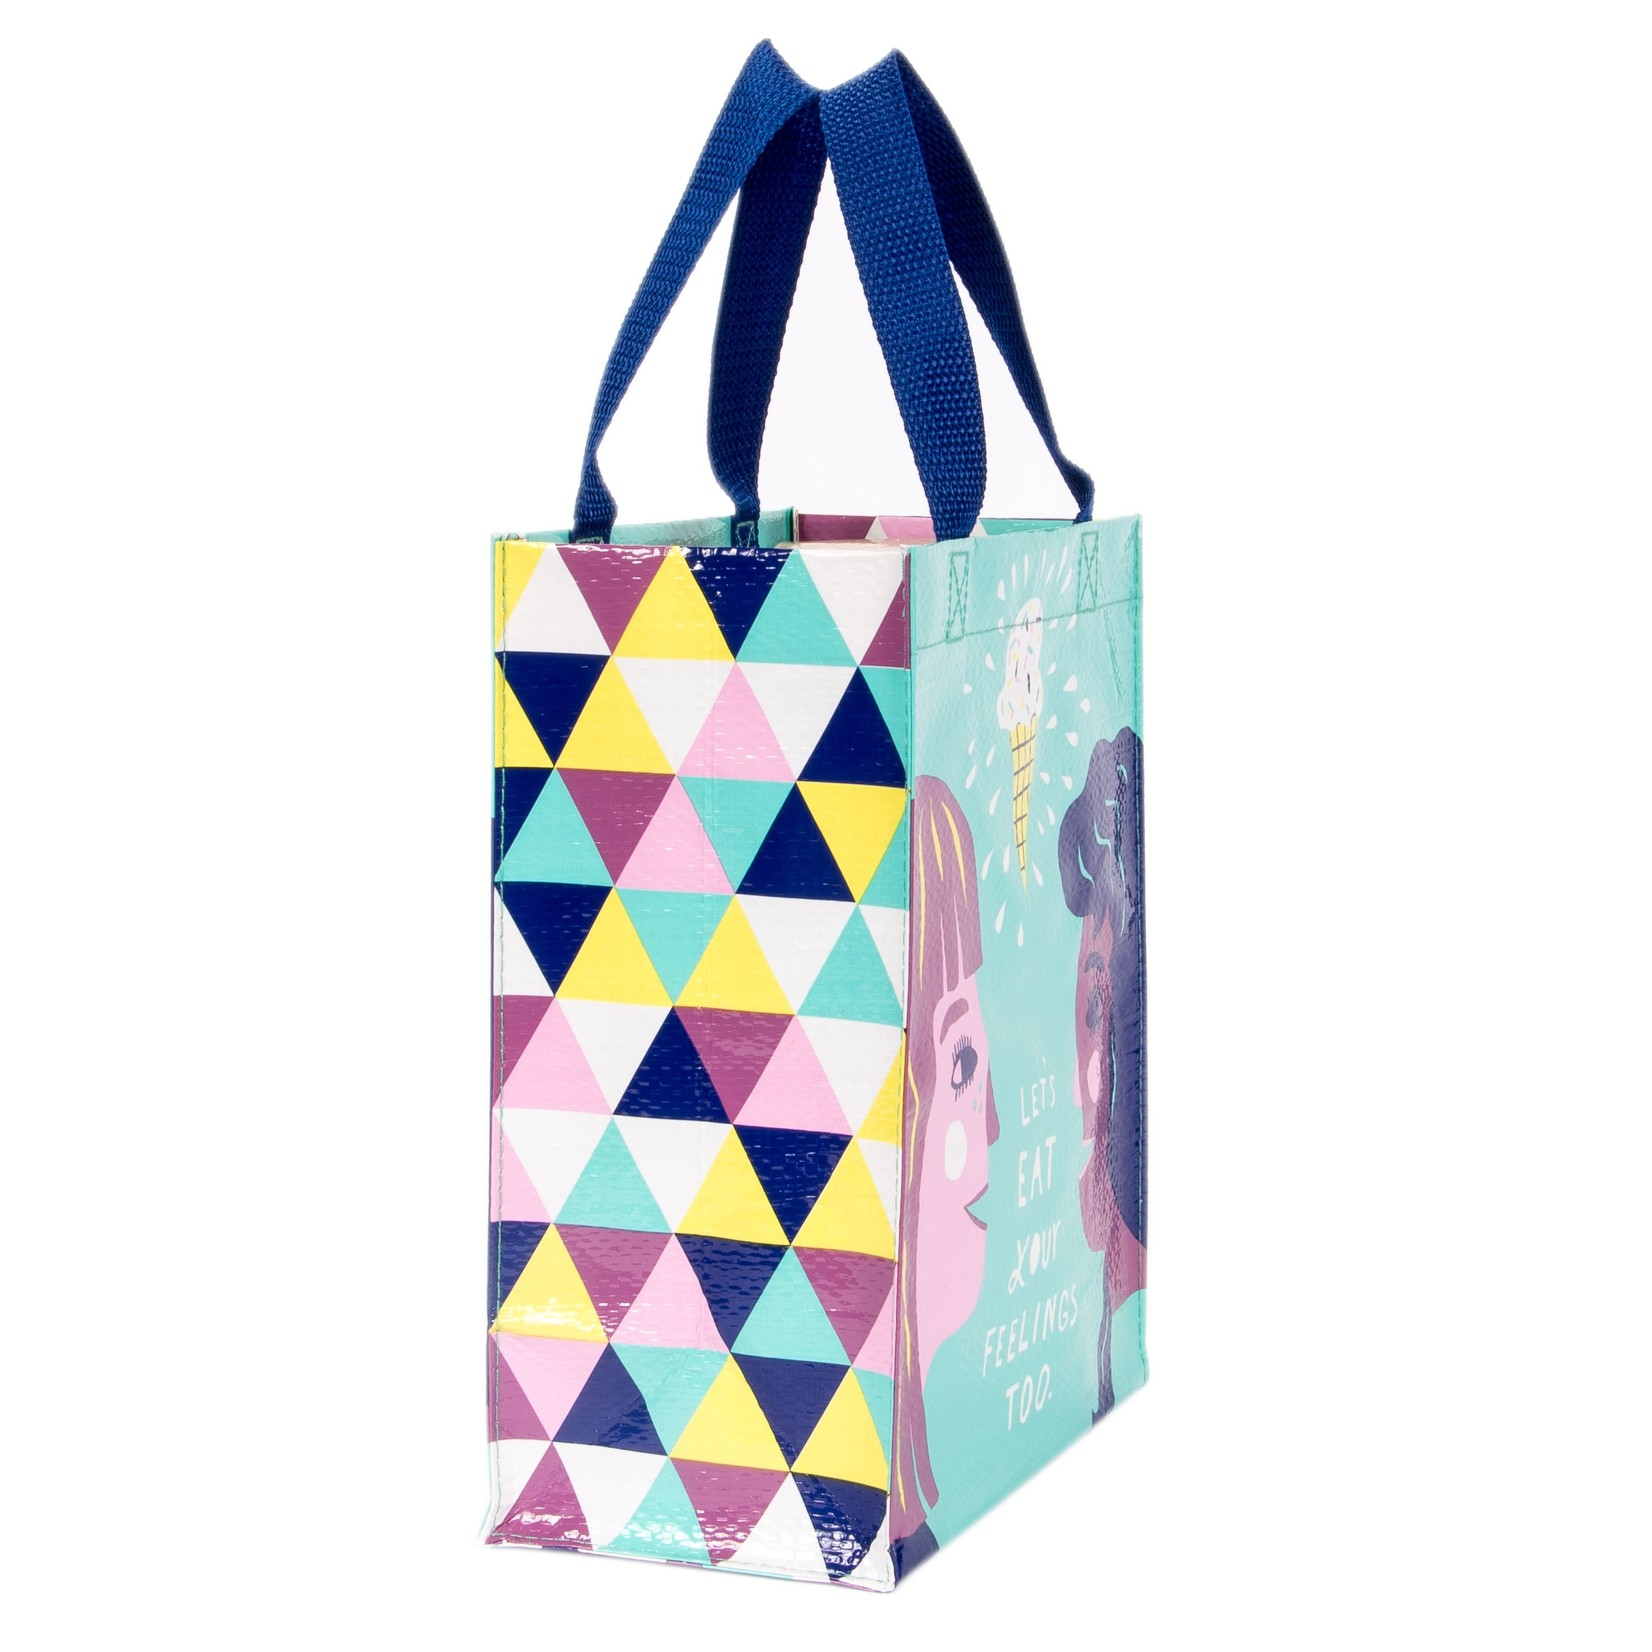 Blue Q Eat Your Feelings Handy Tote